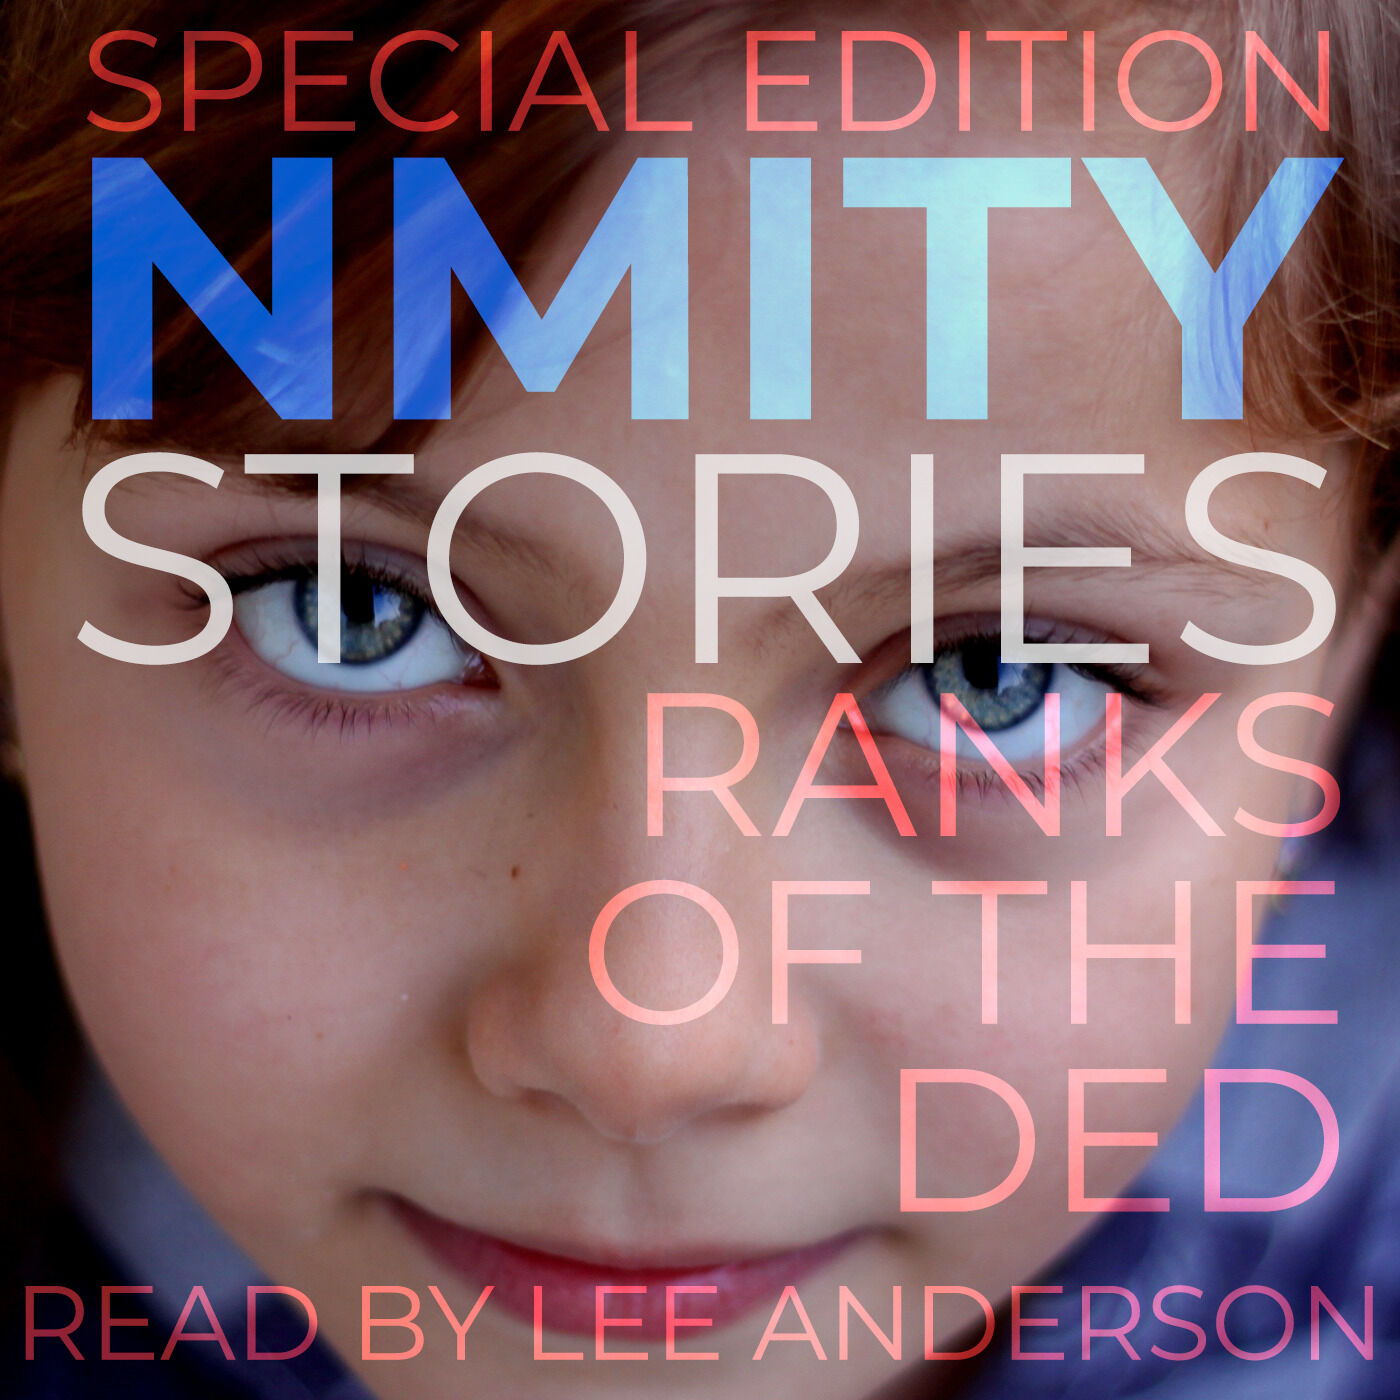 Ranks of the DED - Special Edition Read by Lee Anderson